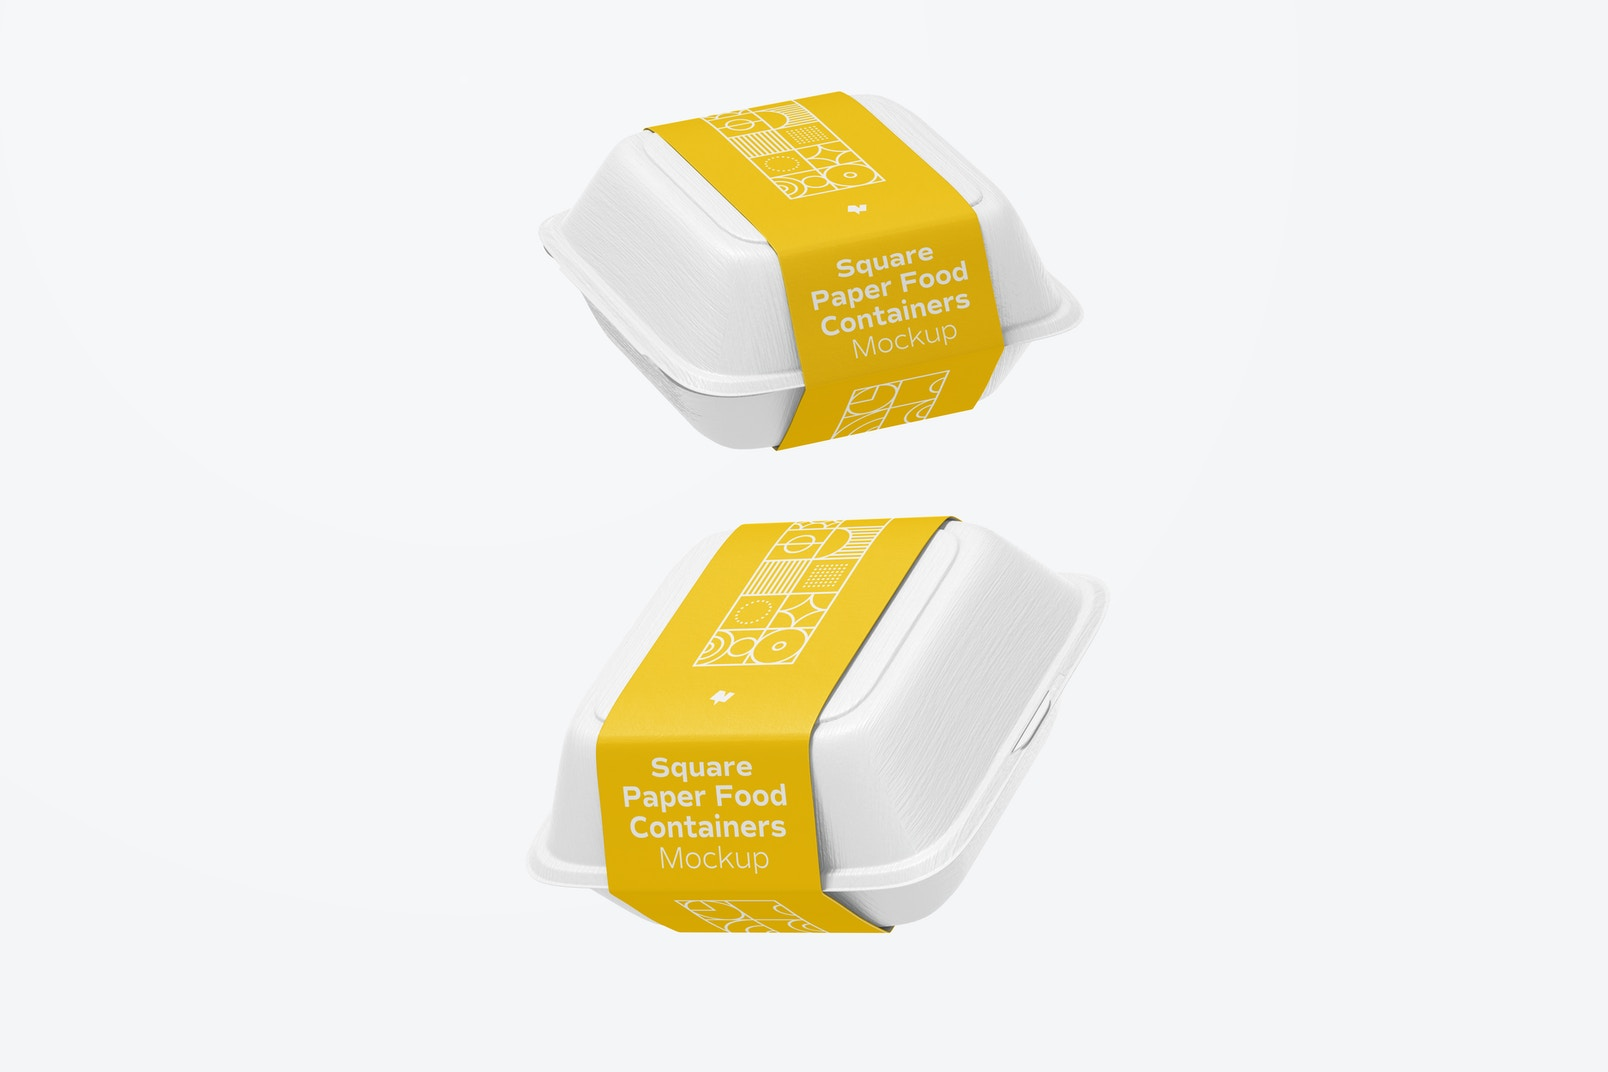 Square Paper Food Containers Mockup, Floating